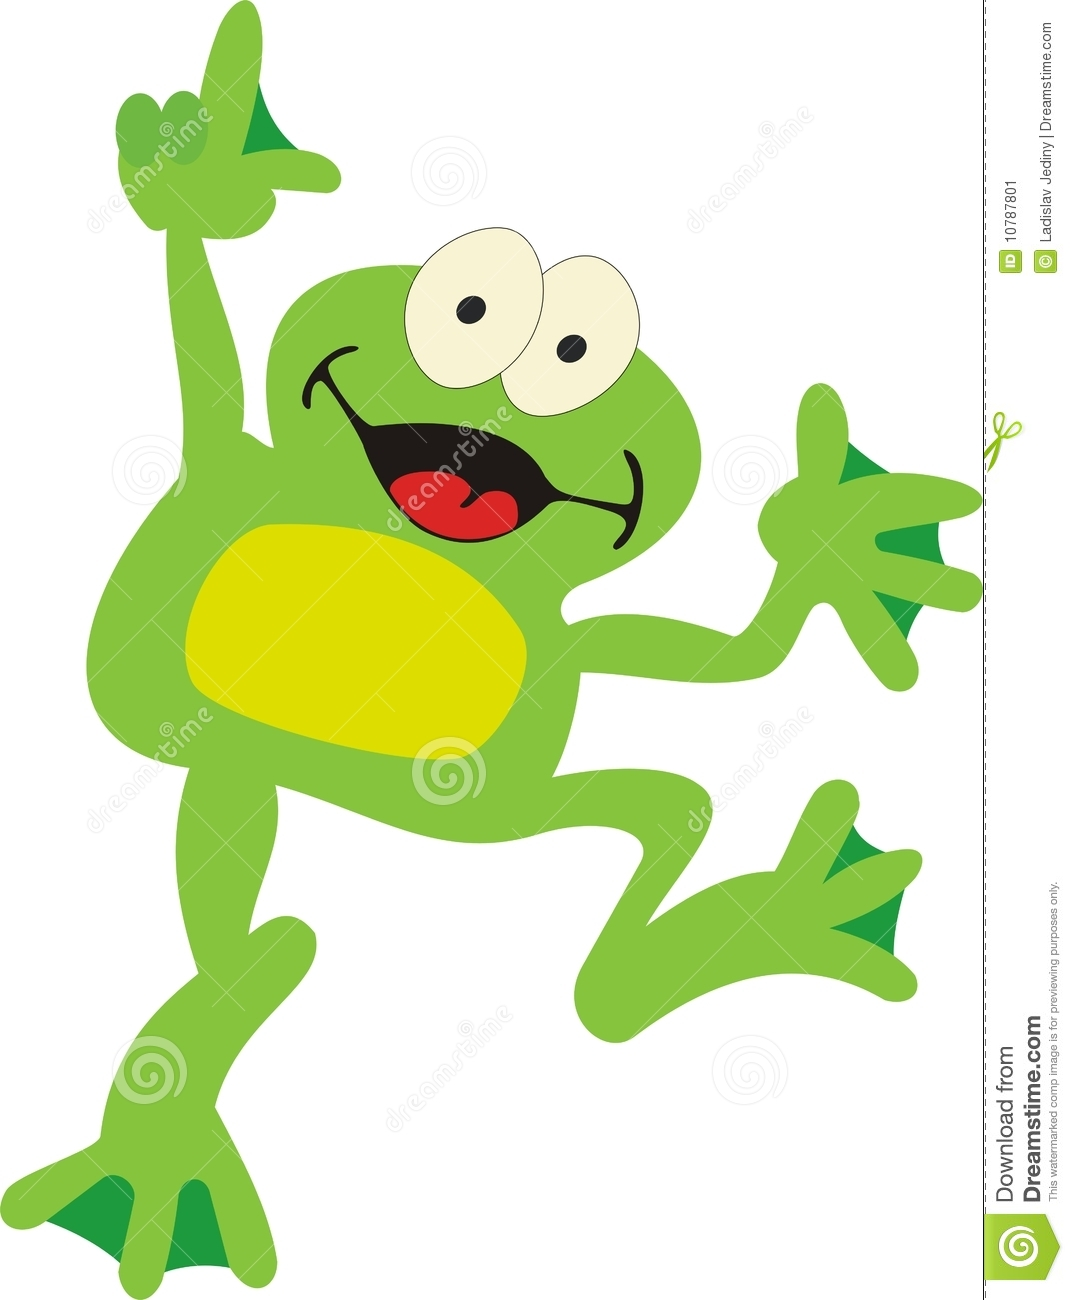 hight resolution of 1073x1300 jump clipart cute hopping frog